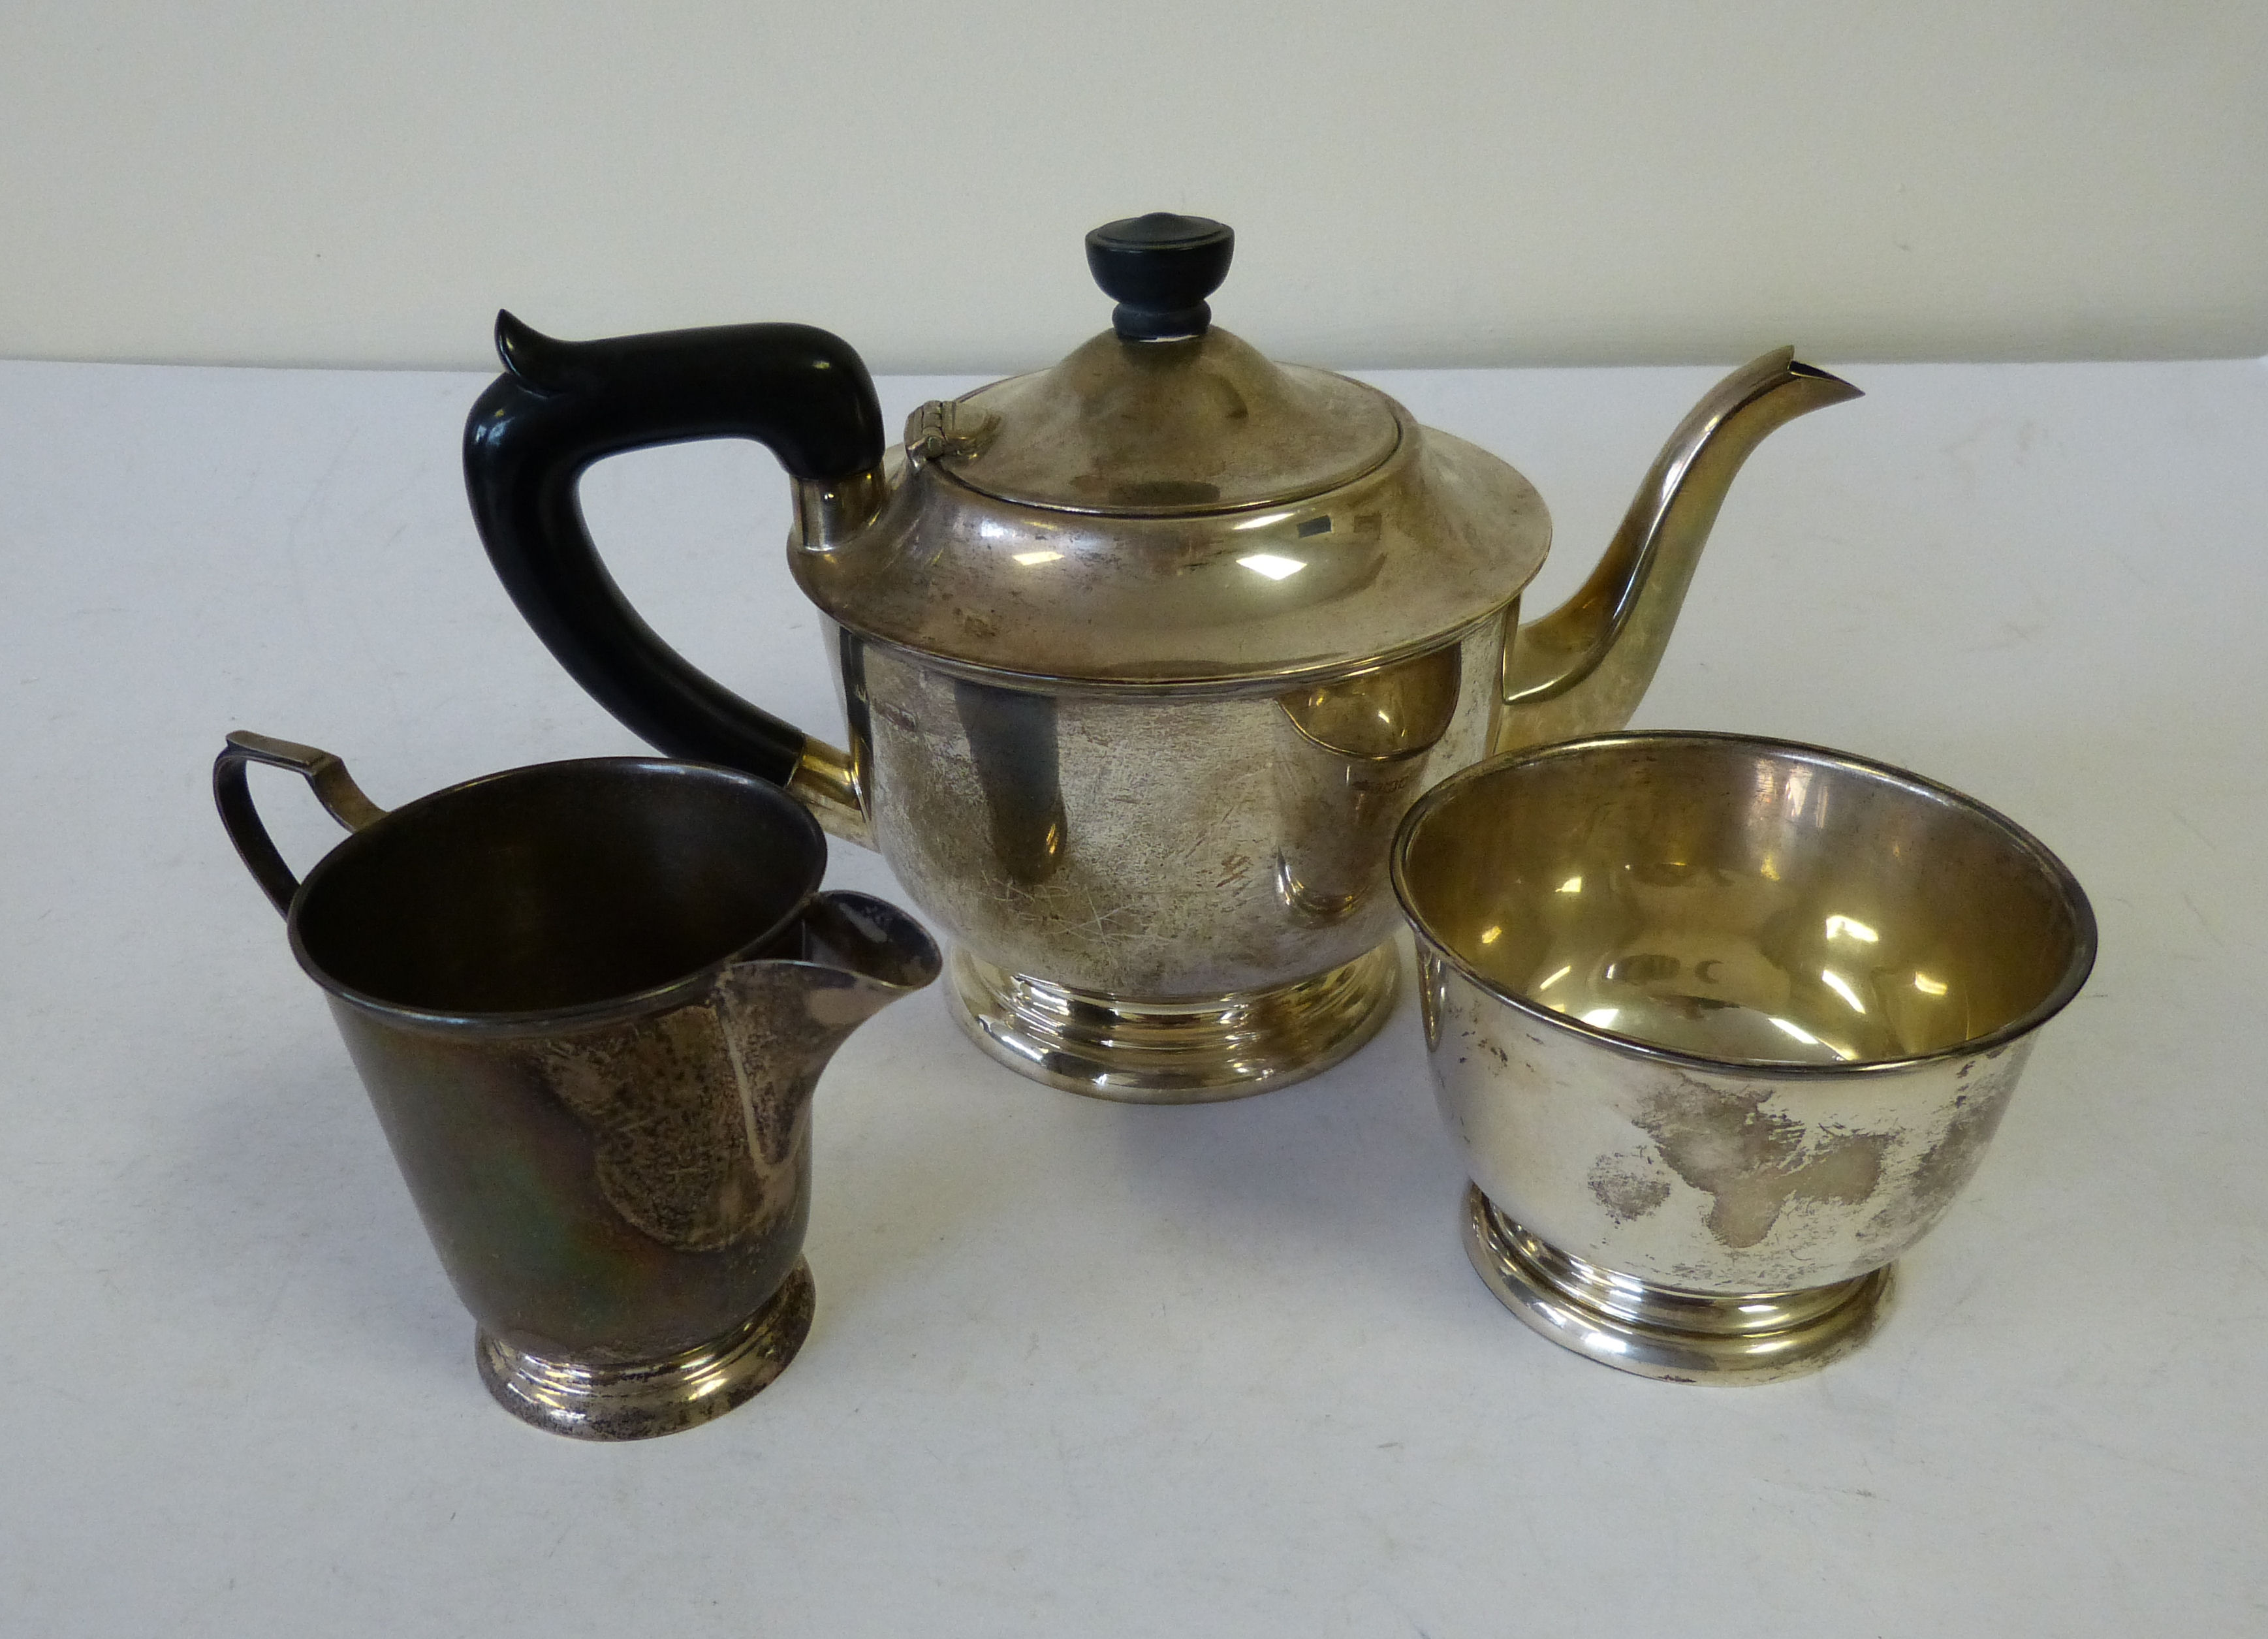 A Sheffield Silver 3-piece Bulbous Tea Service comprising teapot with ebonised handle and finial